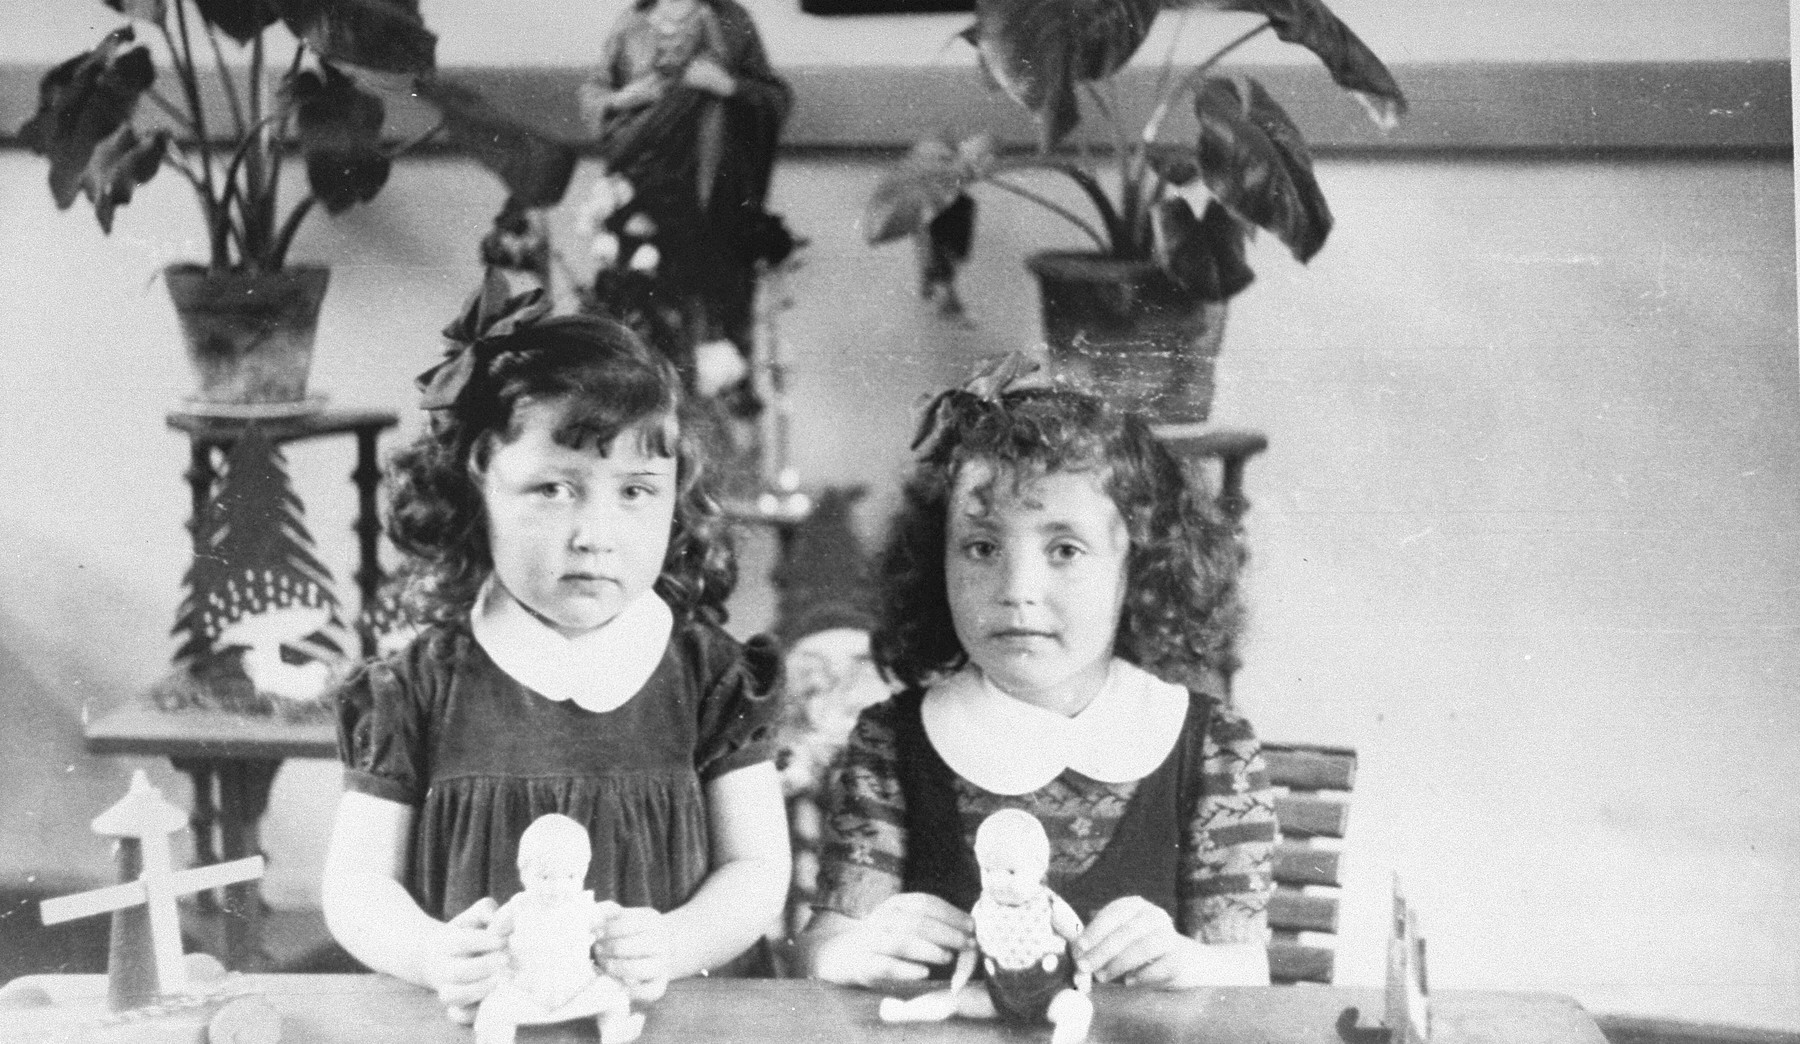 Margo and Annette Lederman pose with dolls given to them by their rescuers, Clementine and Edouard van Buggenhout.